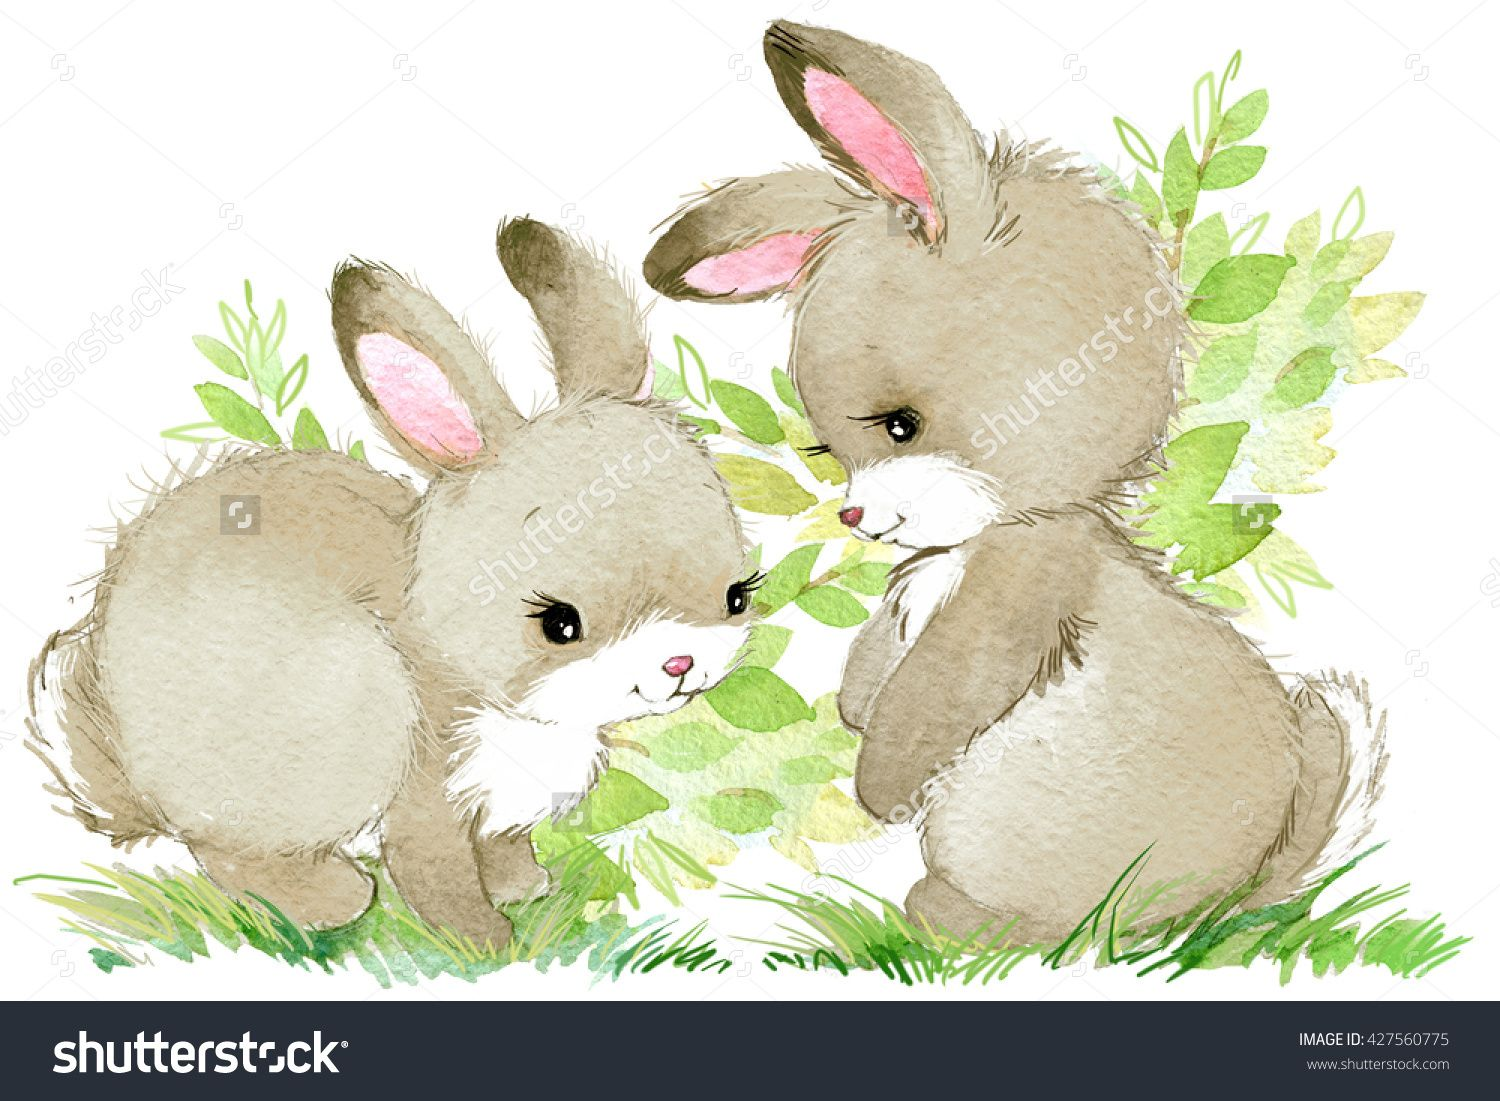 Rabbit Cute Rabbit Cartoon Rabbit Watercolor Animal